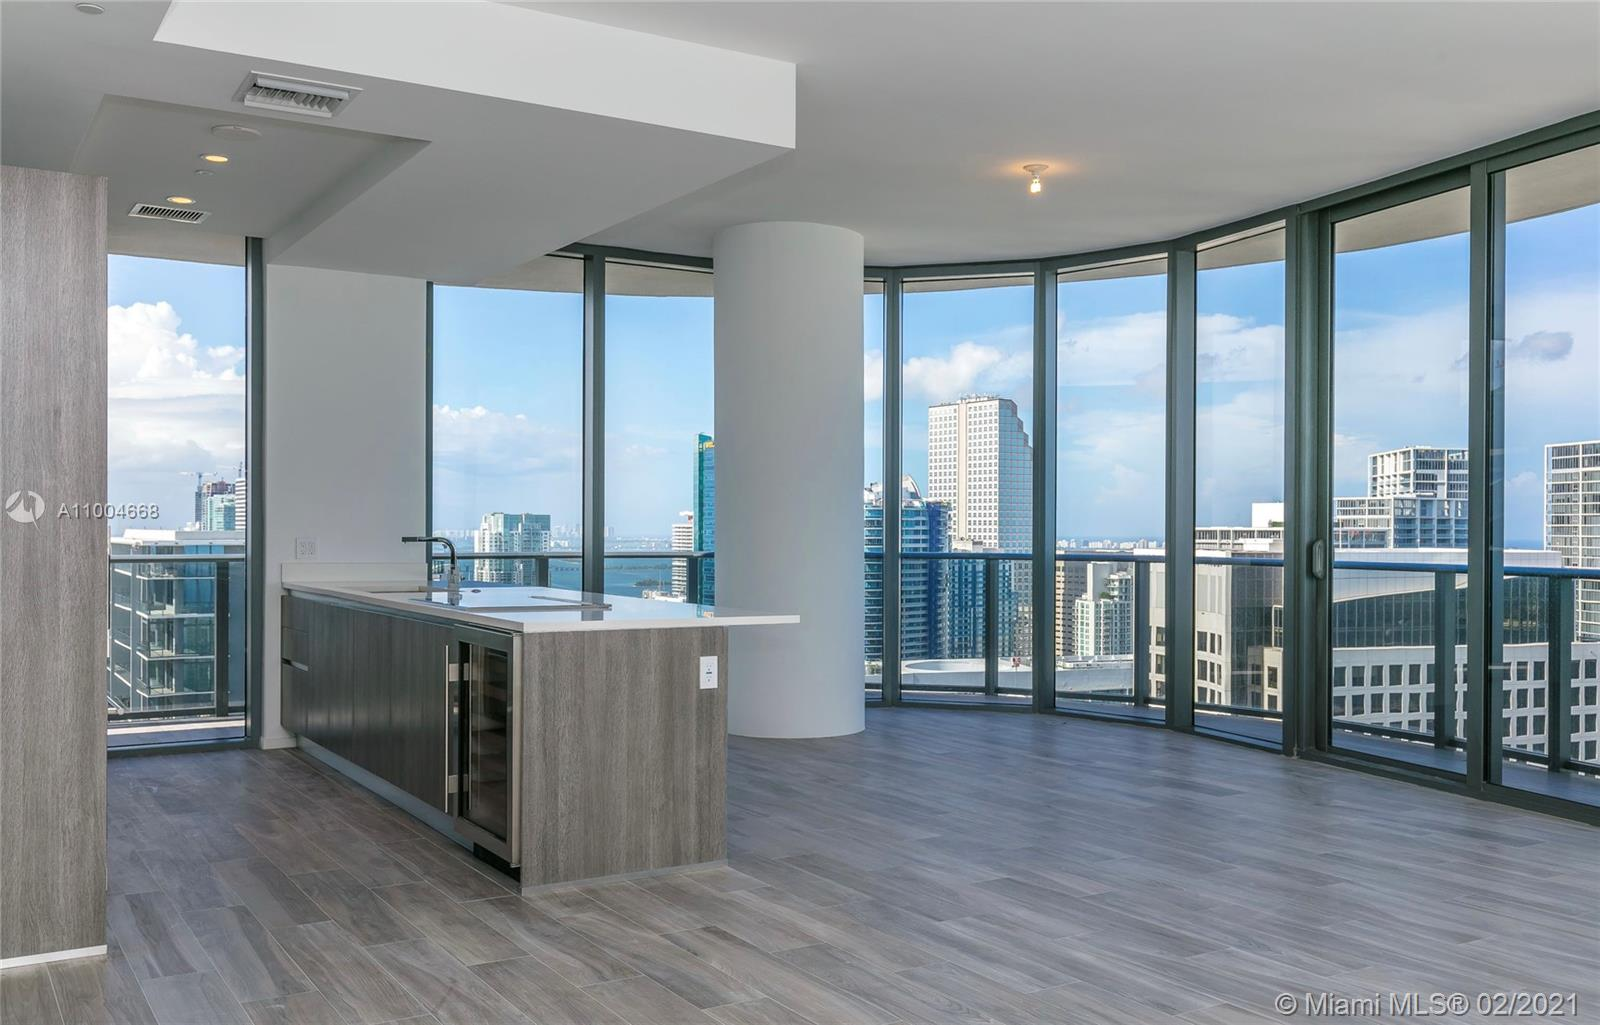 One of a kind 4 Bedroom 4.5 Bathroom unit in the new SLS Lux Brickell. Flow through unit with South East corner views and 2 master suites. Residents can enjoy ultimate access in an oasis of exclusive privileges. Sophisticated designer interiors, original works of art by contemporary masters, private rooftop pool terraces and celebrity chef restaurants are amongst the many features, amenities and services designed to indulge by residents of SLS LUX. Pamper yourself by the SLS Spa and room service from the onsite Katsuya restaurant/bar, access to the 57th level rooftop sky lounge and two-story Cava lounge with outdoor living rooms and Jacuzzi waterfall showers. Enjoy rock-climbing wall, tennis court, basketball court and full-service fitness center.